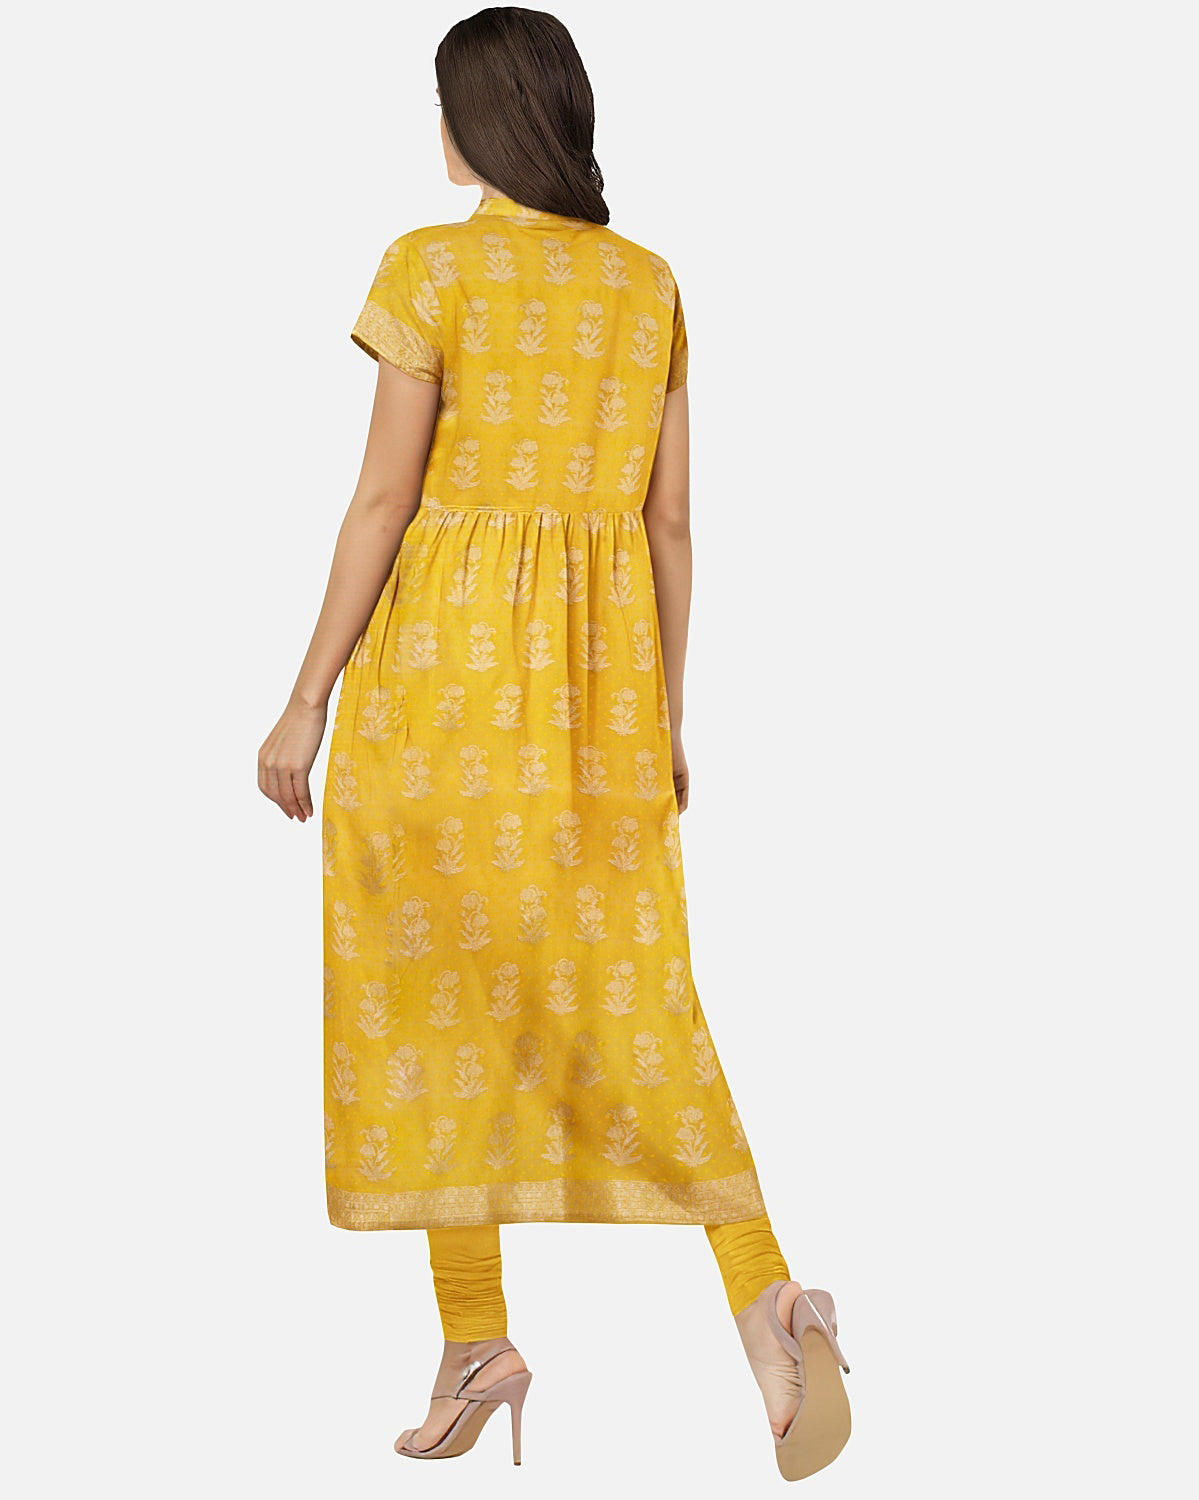 Golden Yellow Cotton Chanderi 2 pc Suit Fabric Set